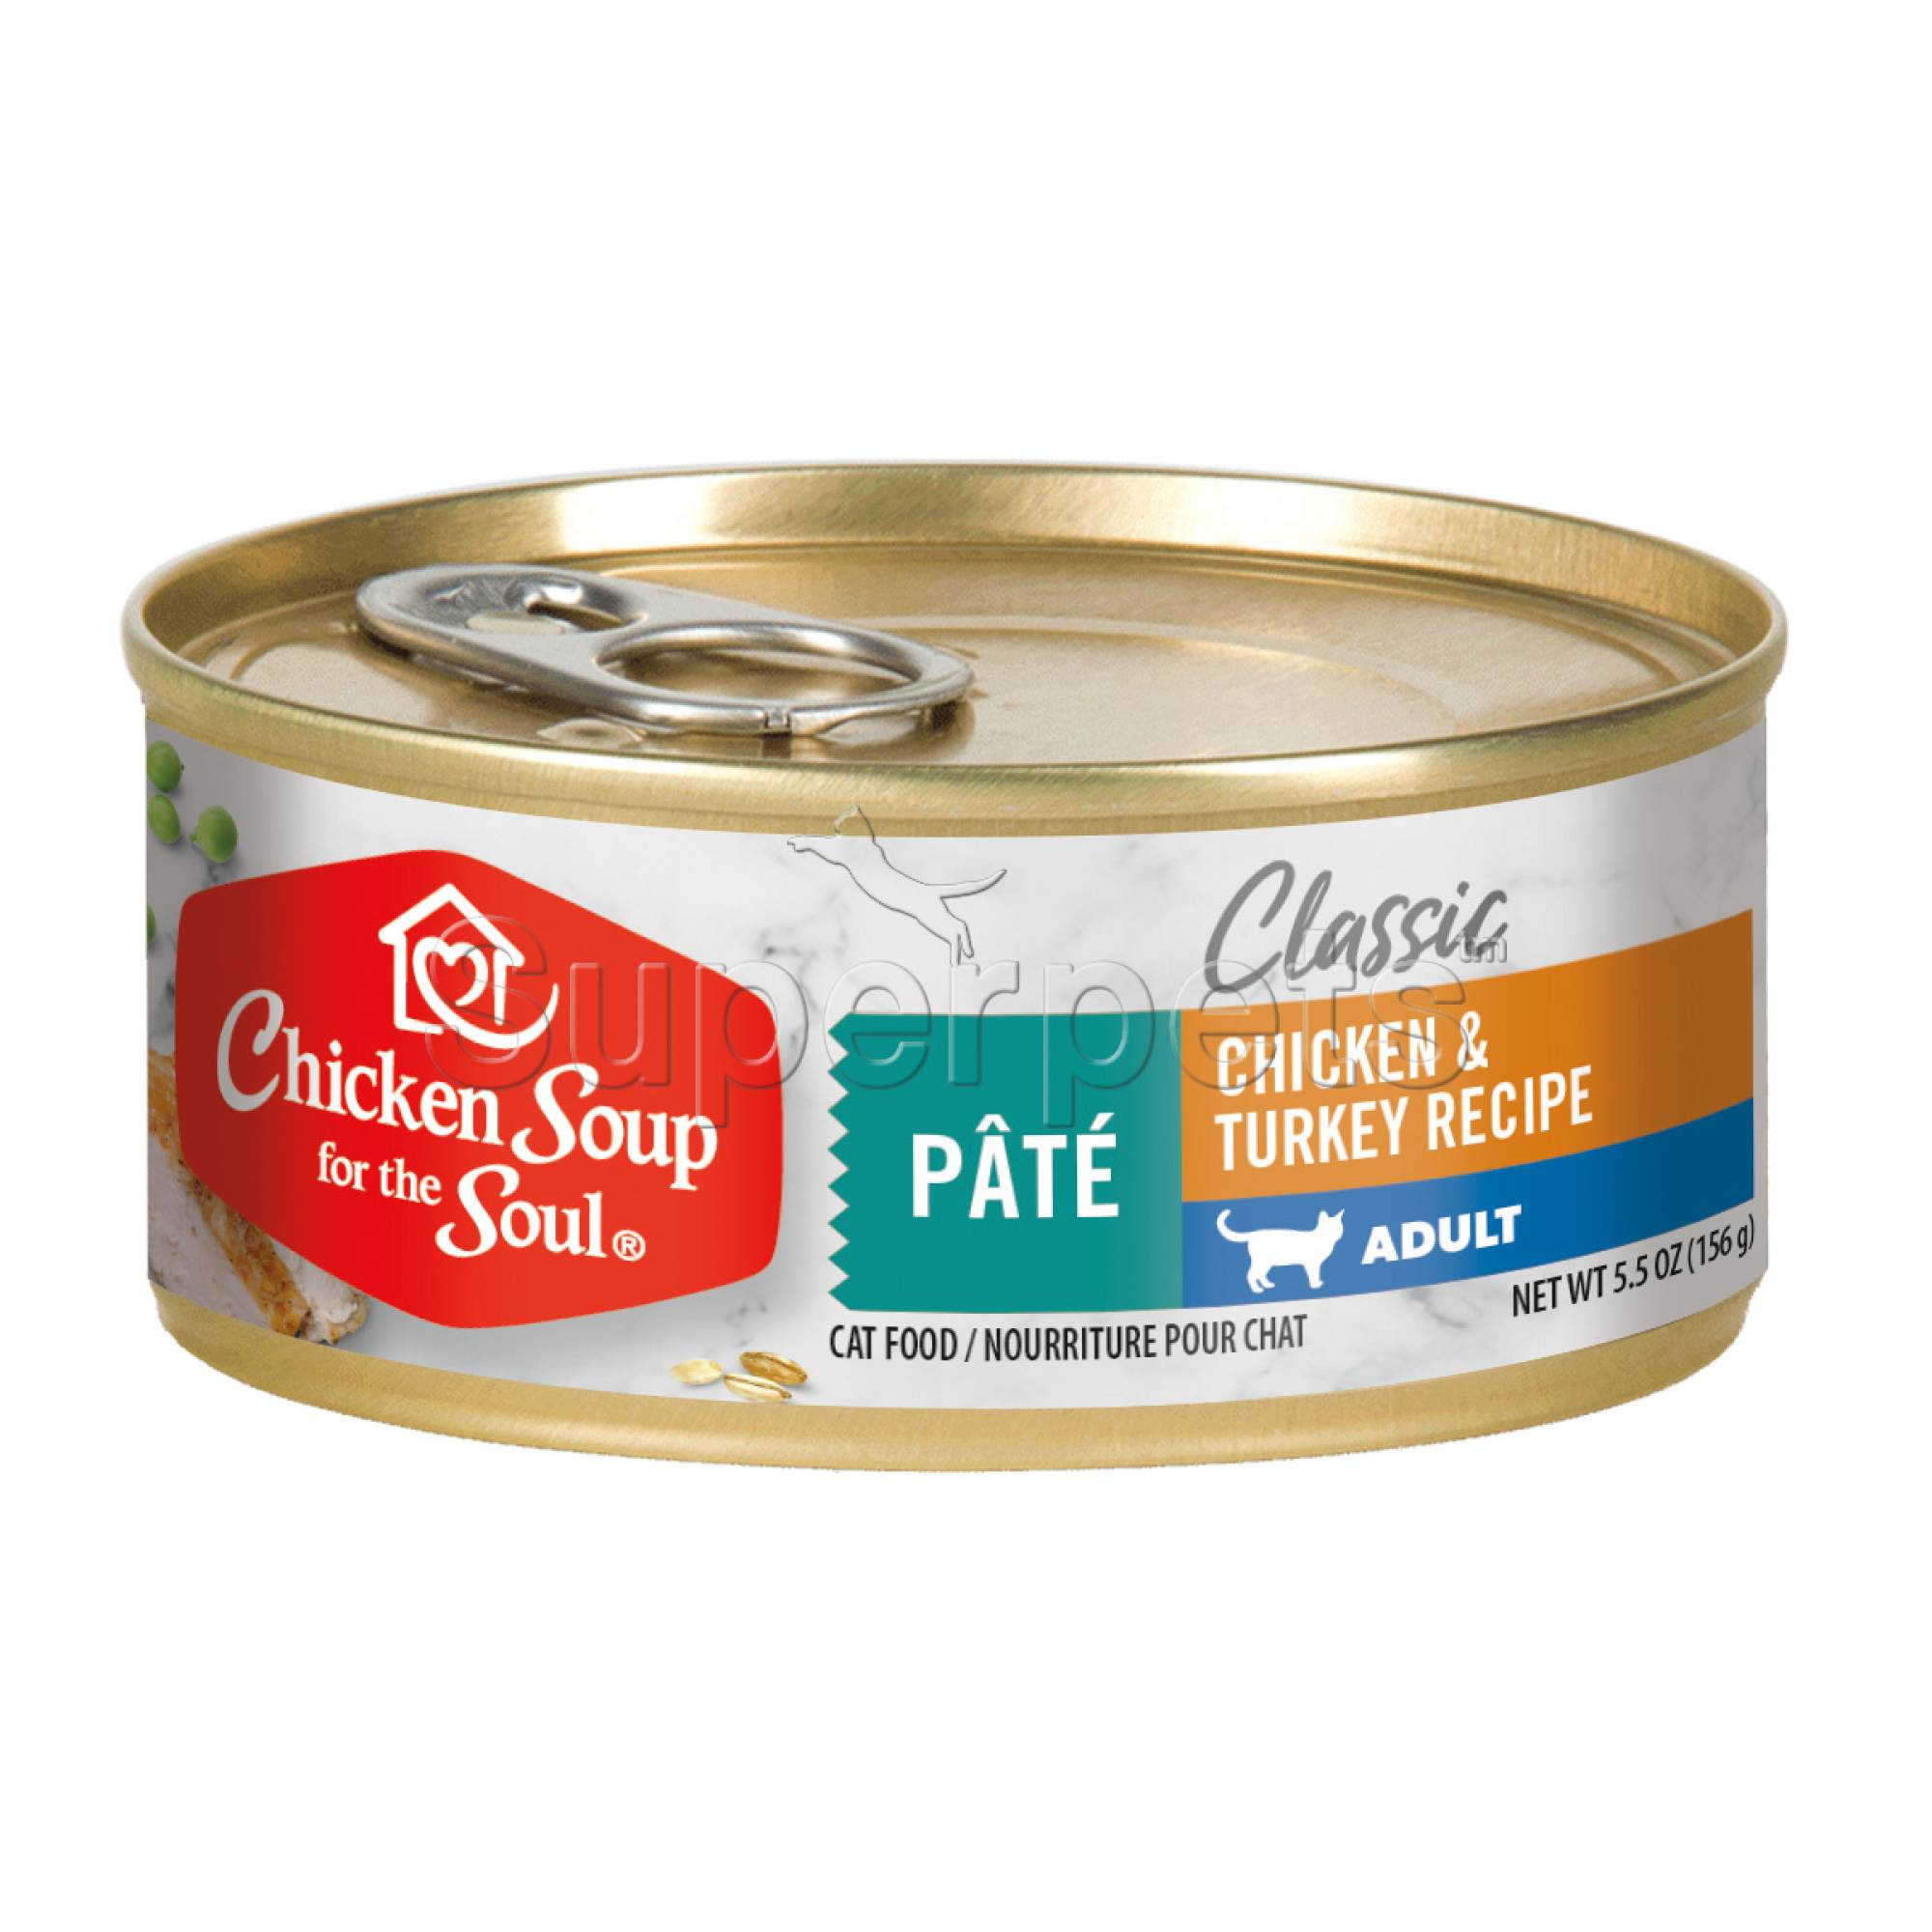 Chicken Soup for the Soul Cat Classic Pate 156g Adult Chicken & Turkey Recipe